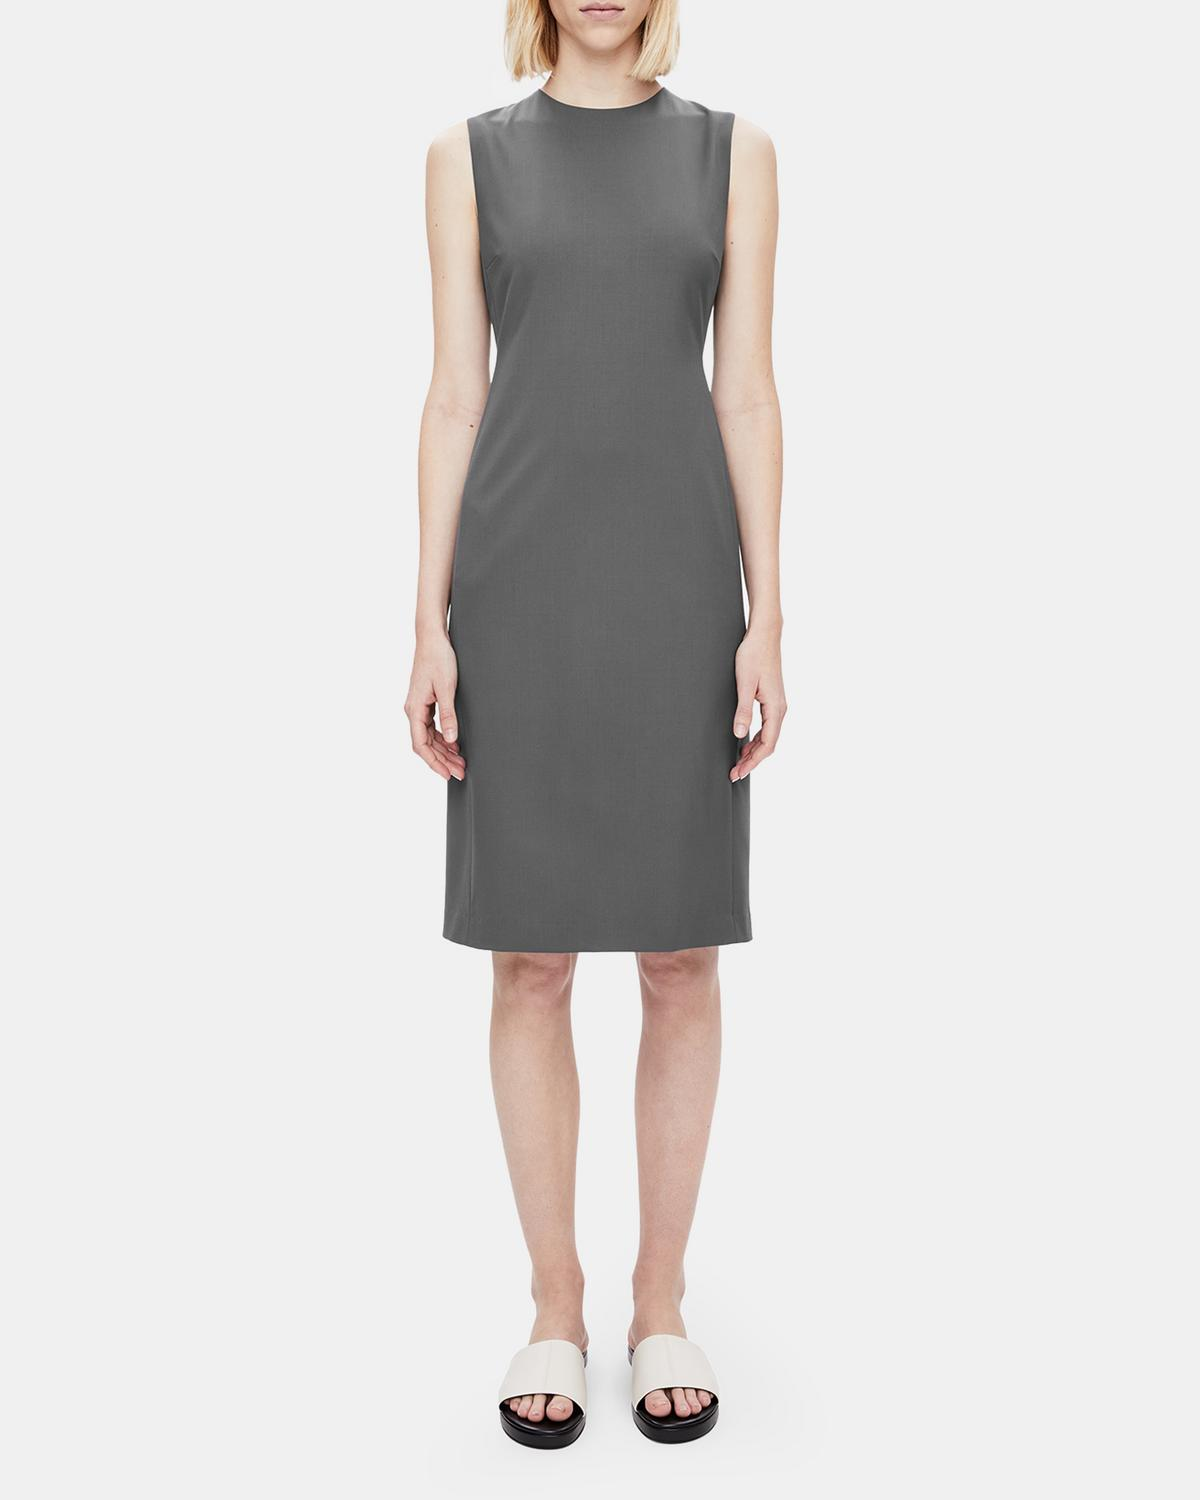 bda2ecc5313 Theory. Extended Sizes Available. Good Wool Classic Dress 0 - click to view  larger image